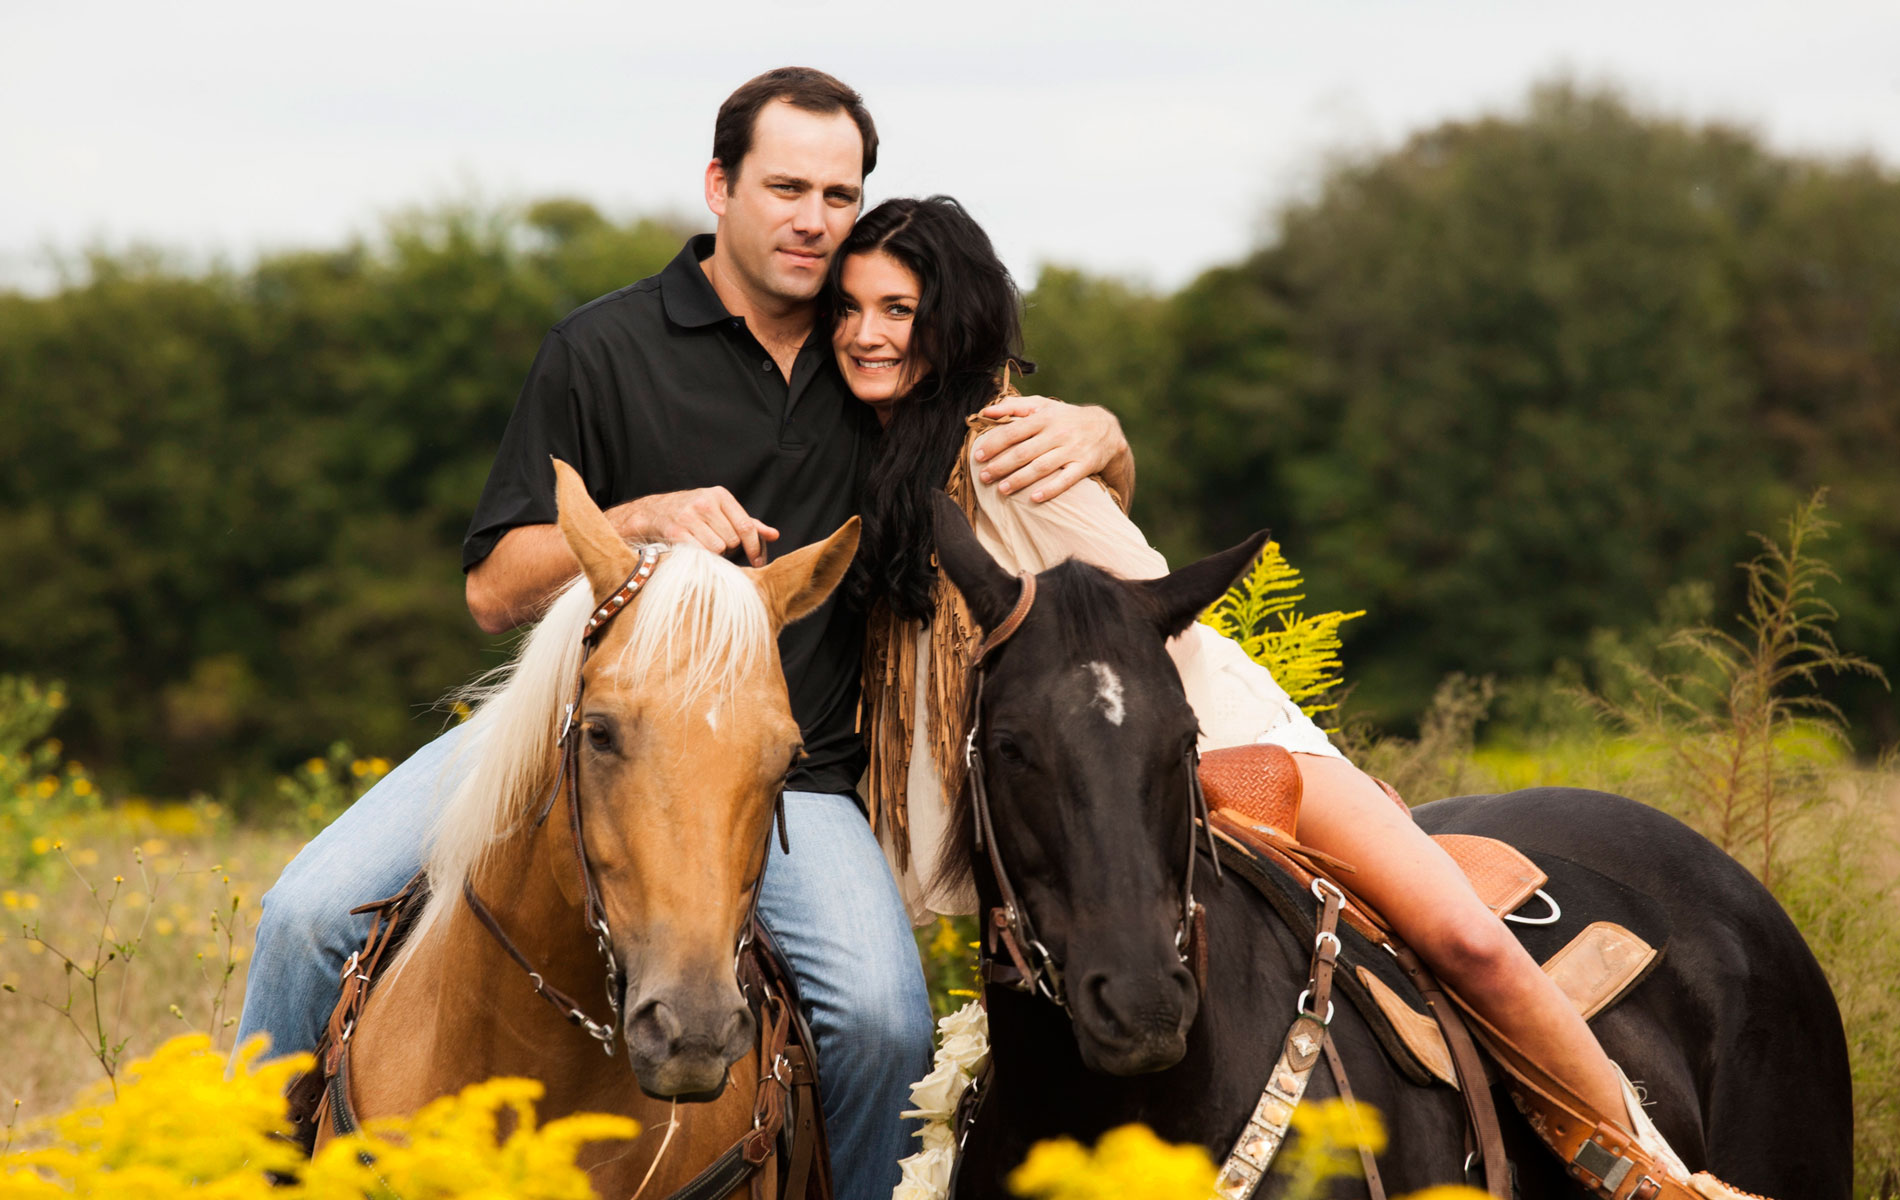 Newlyweds riding horses